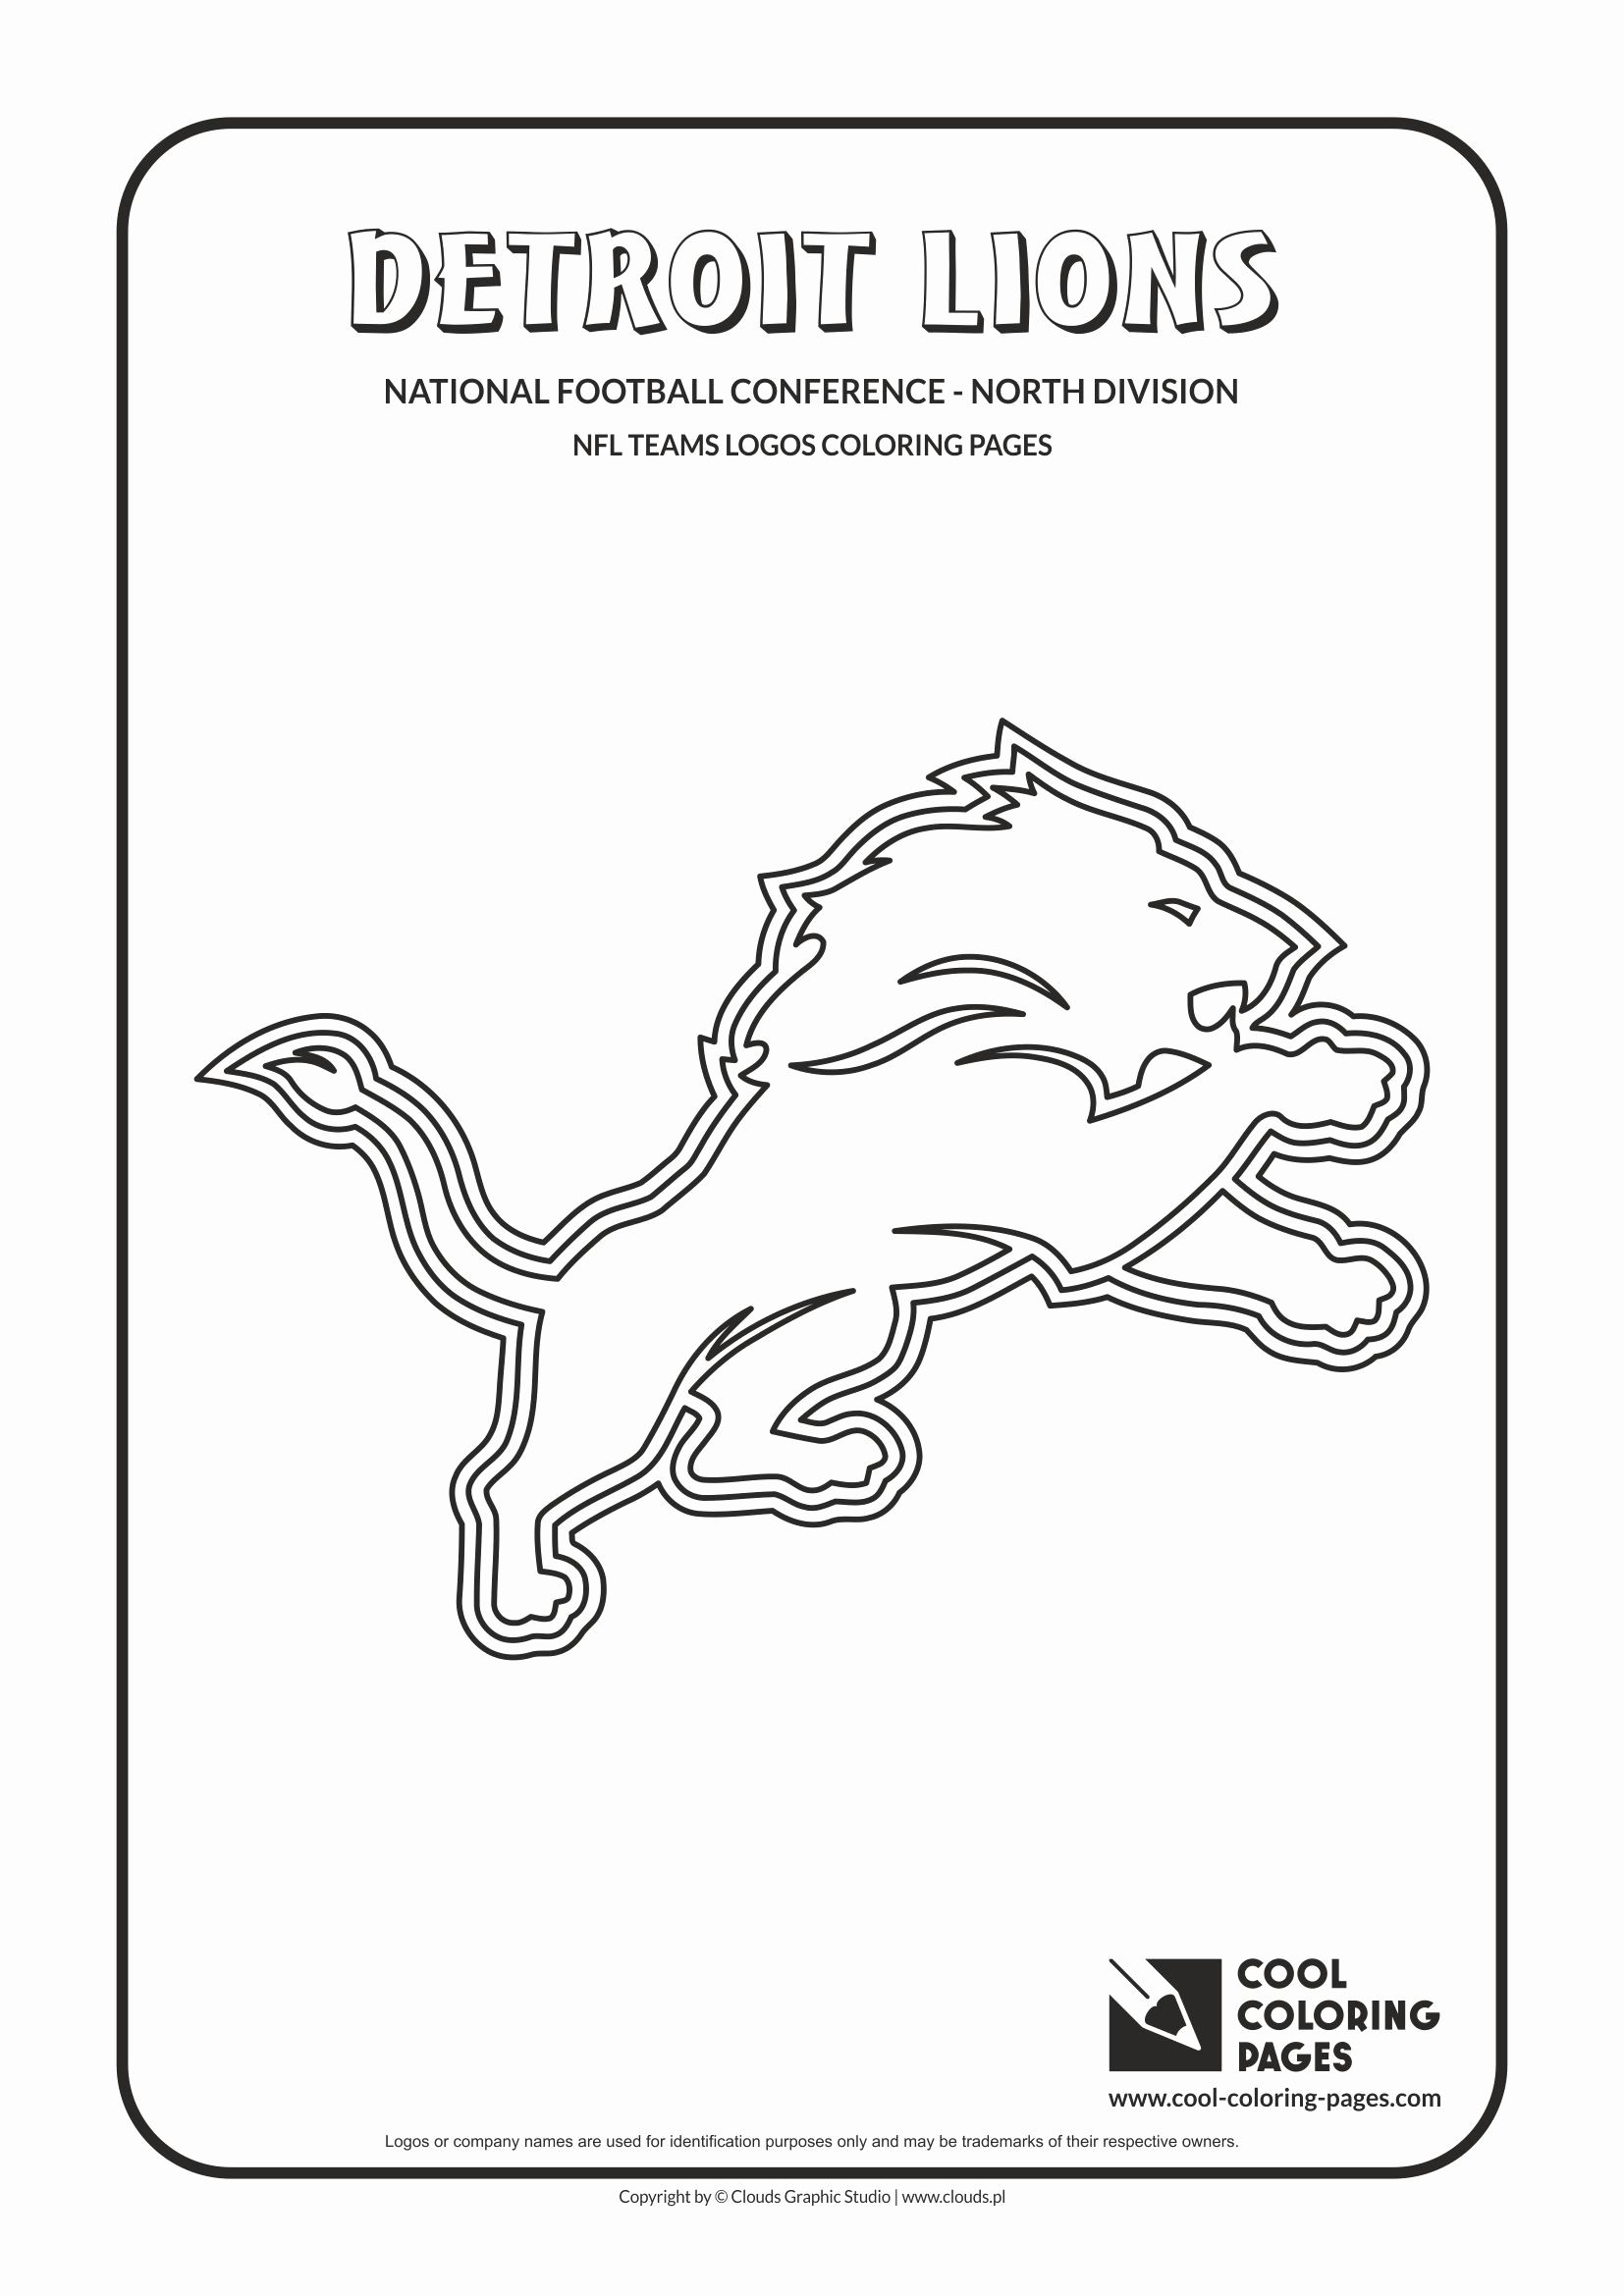 Nfl Coloring Pages Beautiful Cool Coloring Pages Nfl Teams Logos Coloring Pages Cool In 2020 Football Coloring Pages Nfl Teams Logos Football Logo